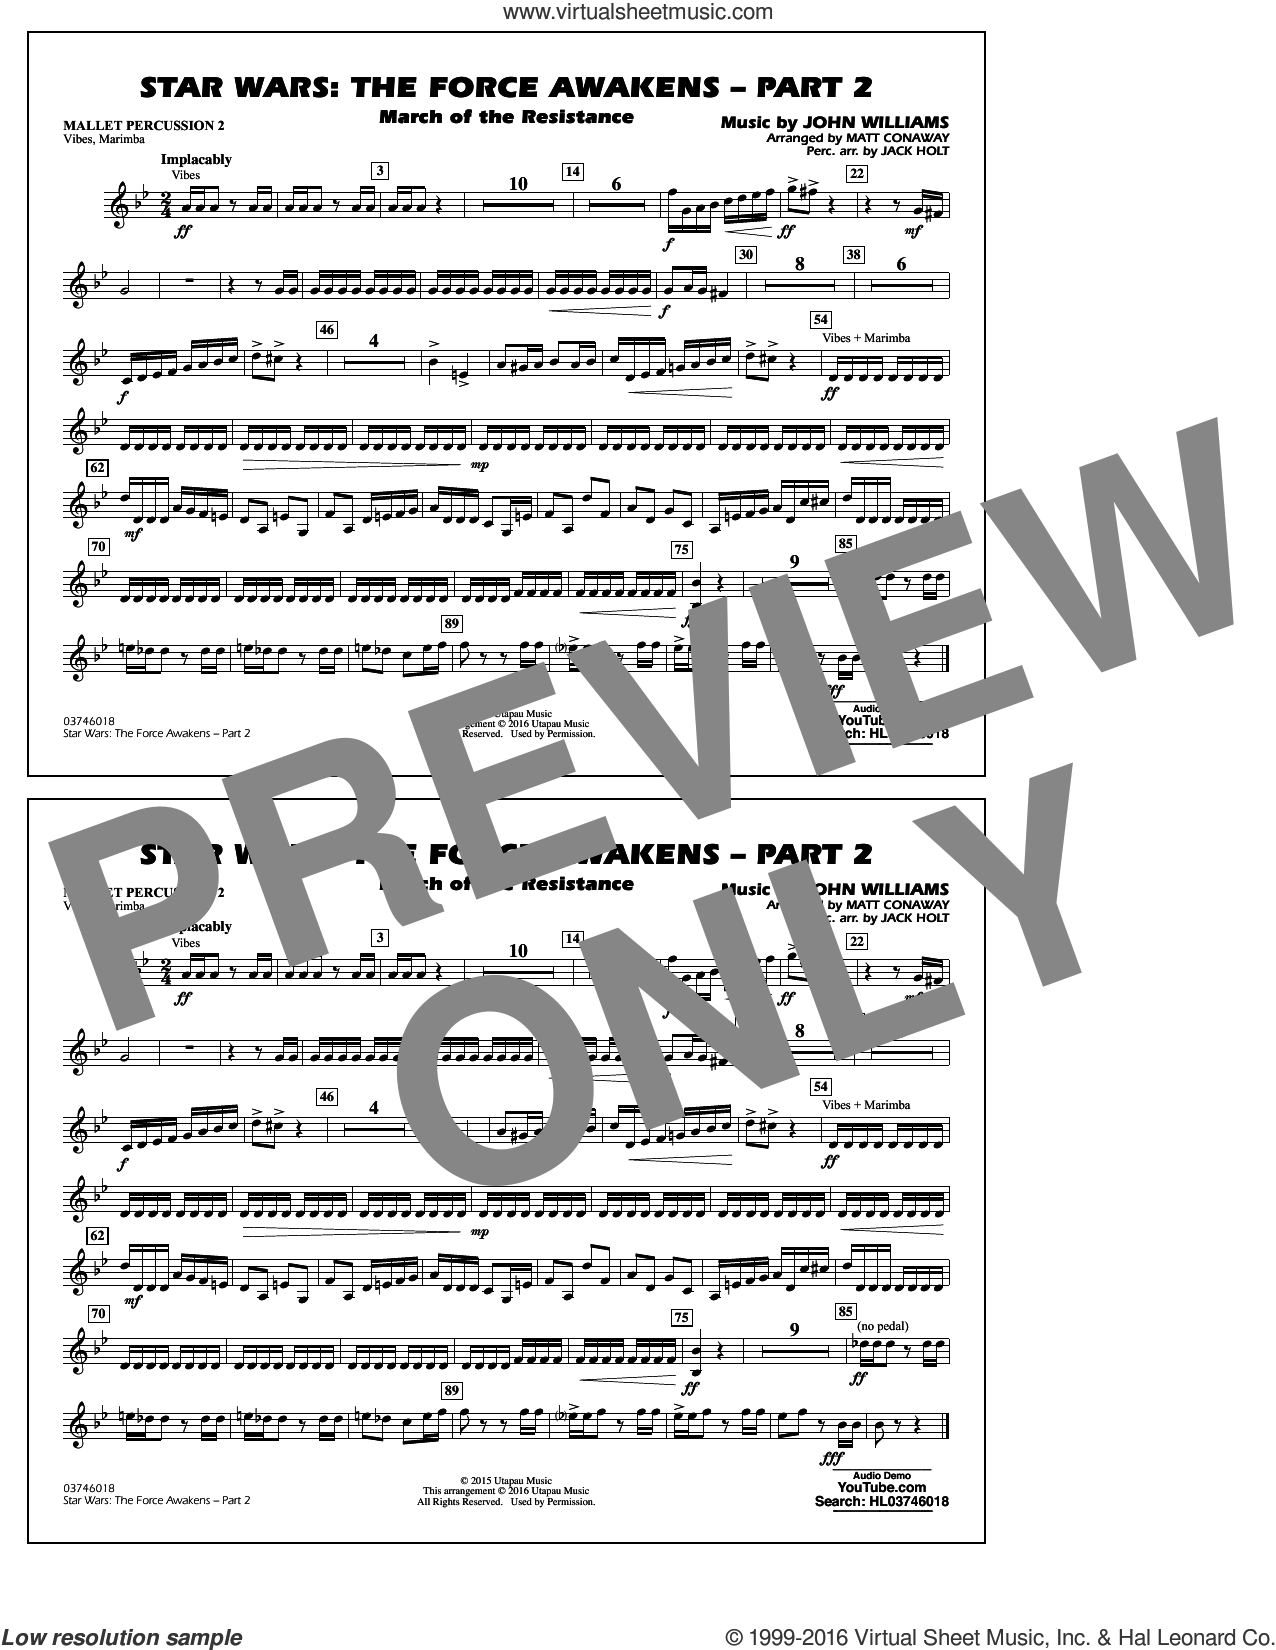 Star Wars: The Force Awakens, part 2 sheet music for marching band (mallet percussion 2) by John Williams and Matt Conaway. Score Image Preview.